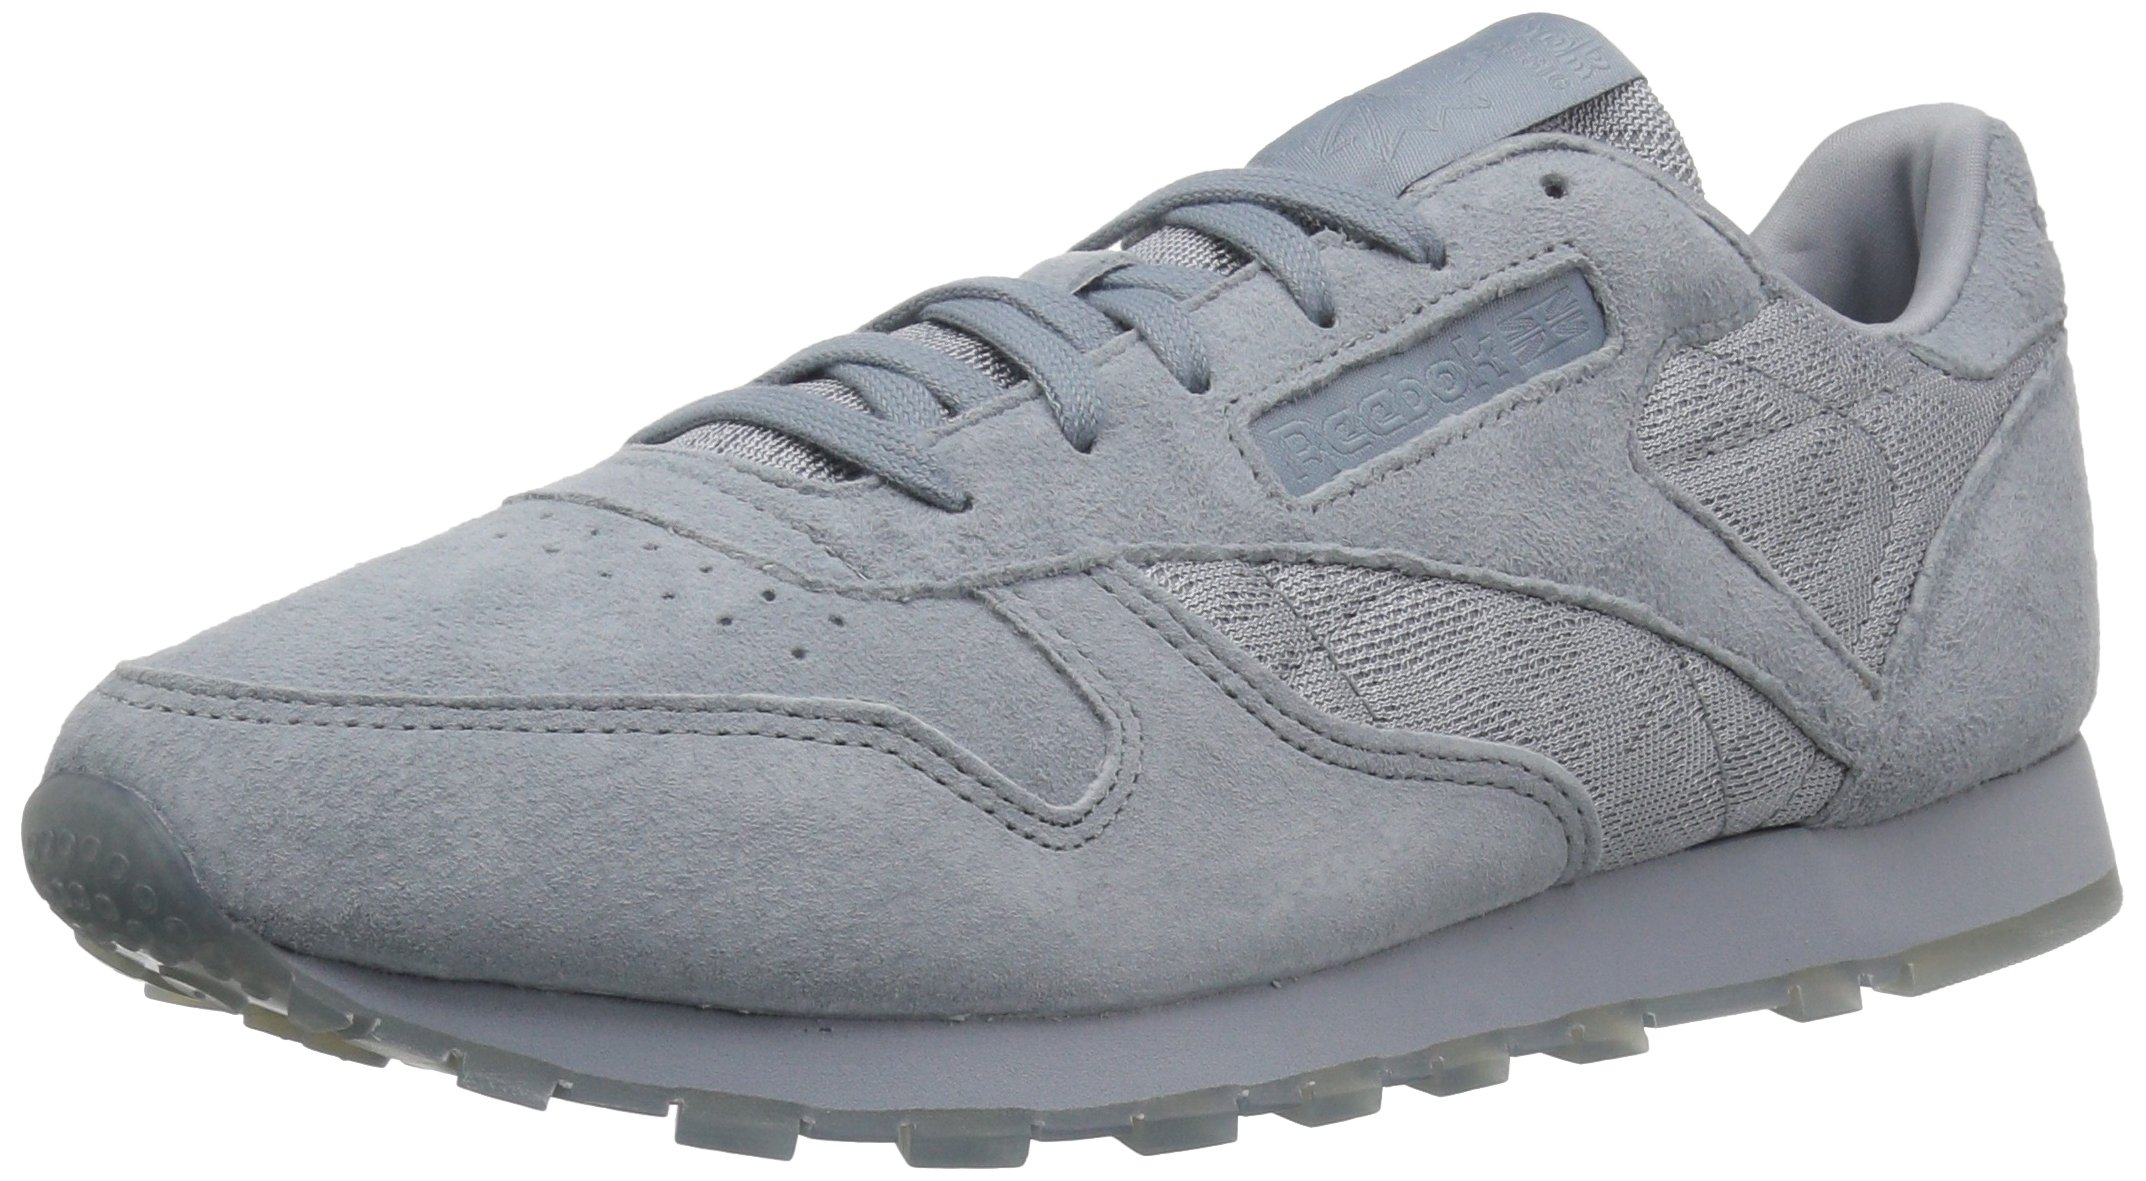 Reebok Women's CL Lthr Lace Sneaker, Meteor Grey/White, 8.5 M US